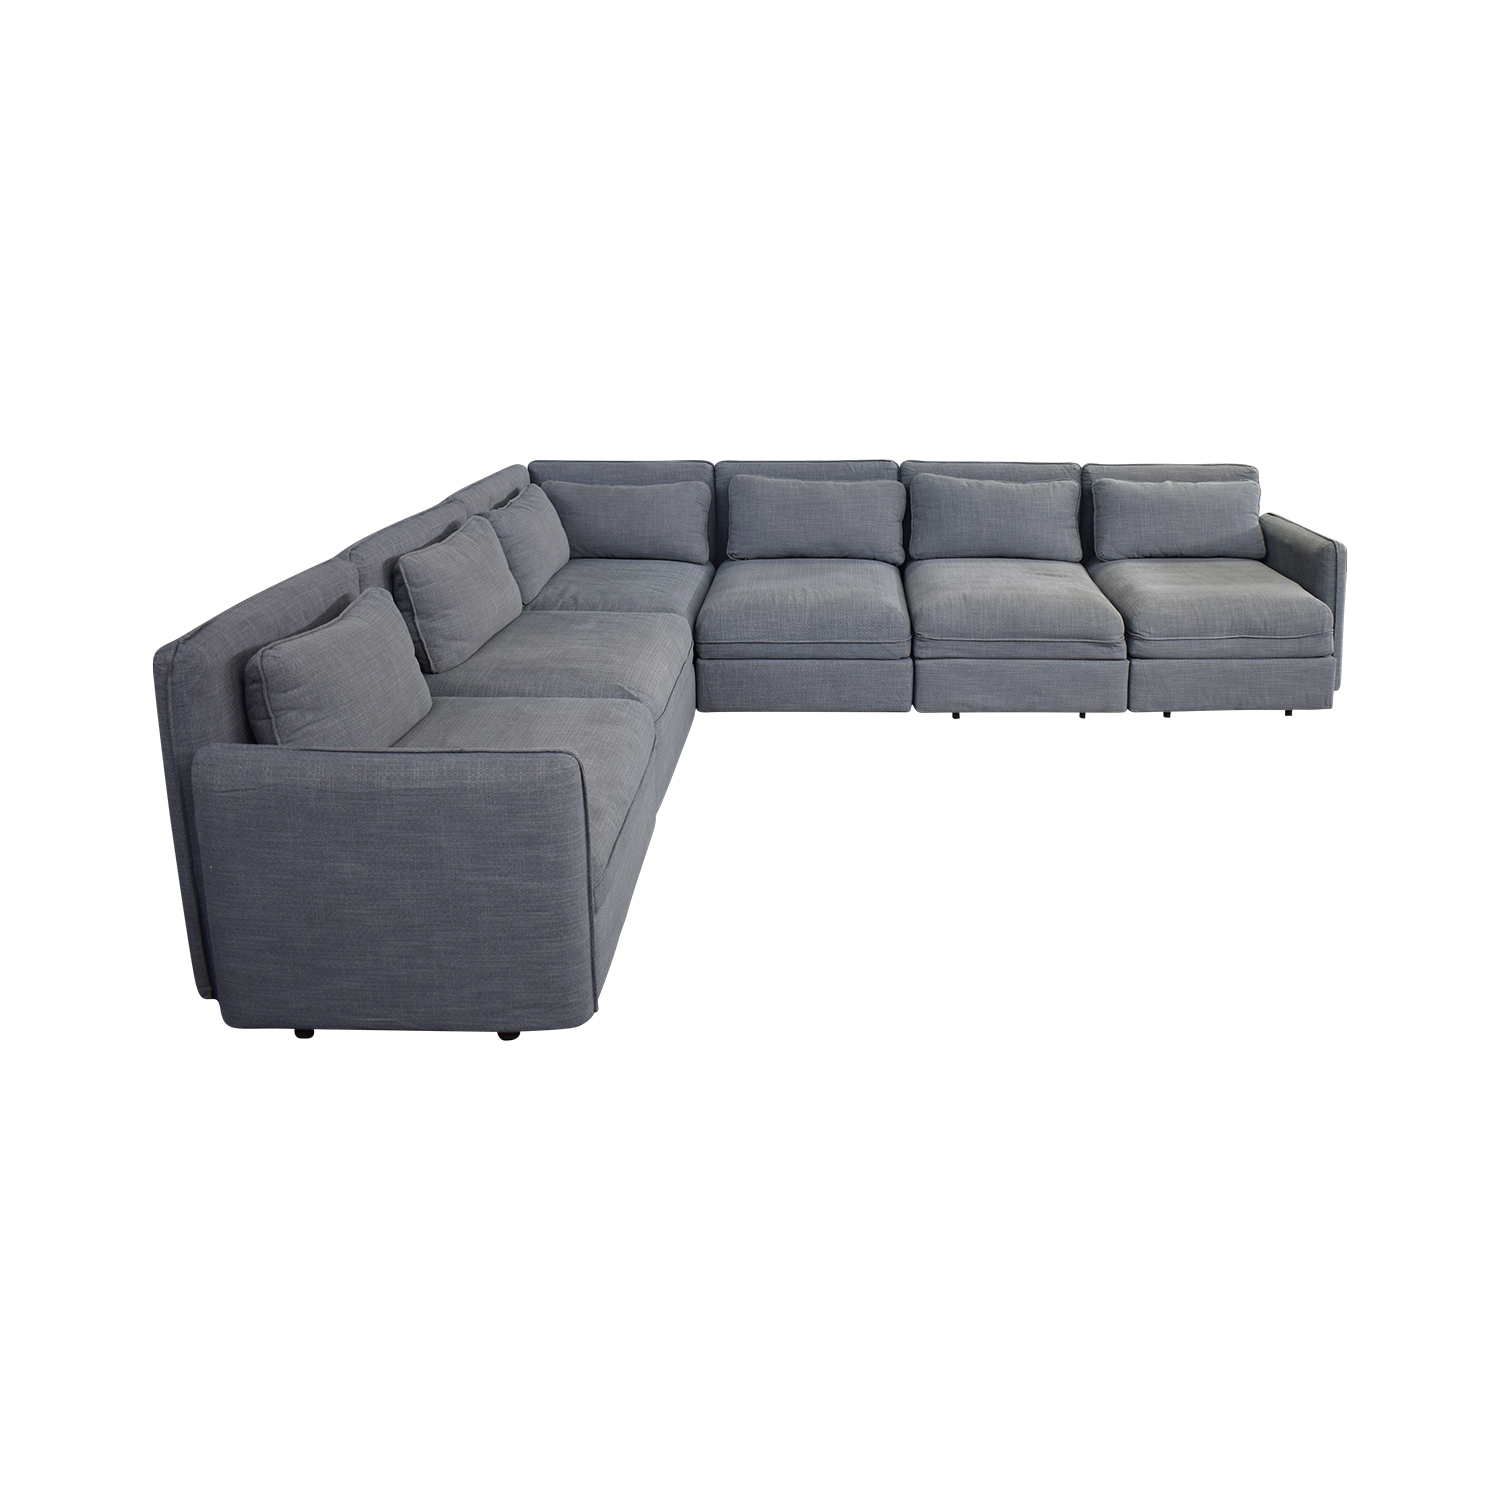 70% OFF - IKEA Ikea Six Piece Sectional Sleeper Sofa / Sofas